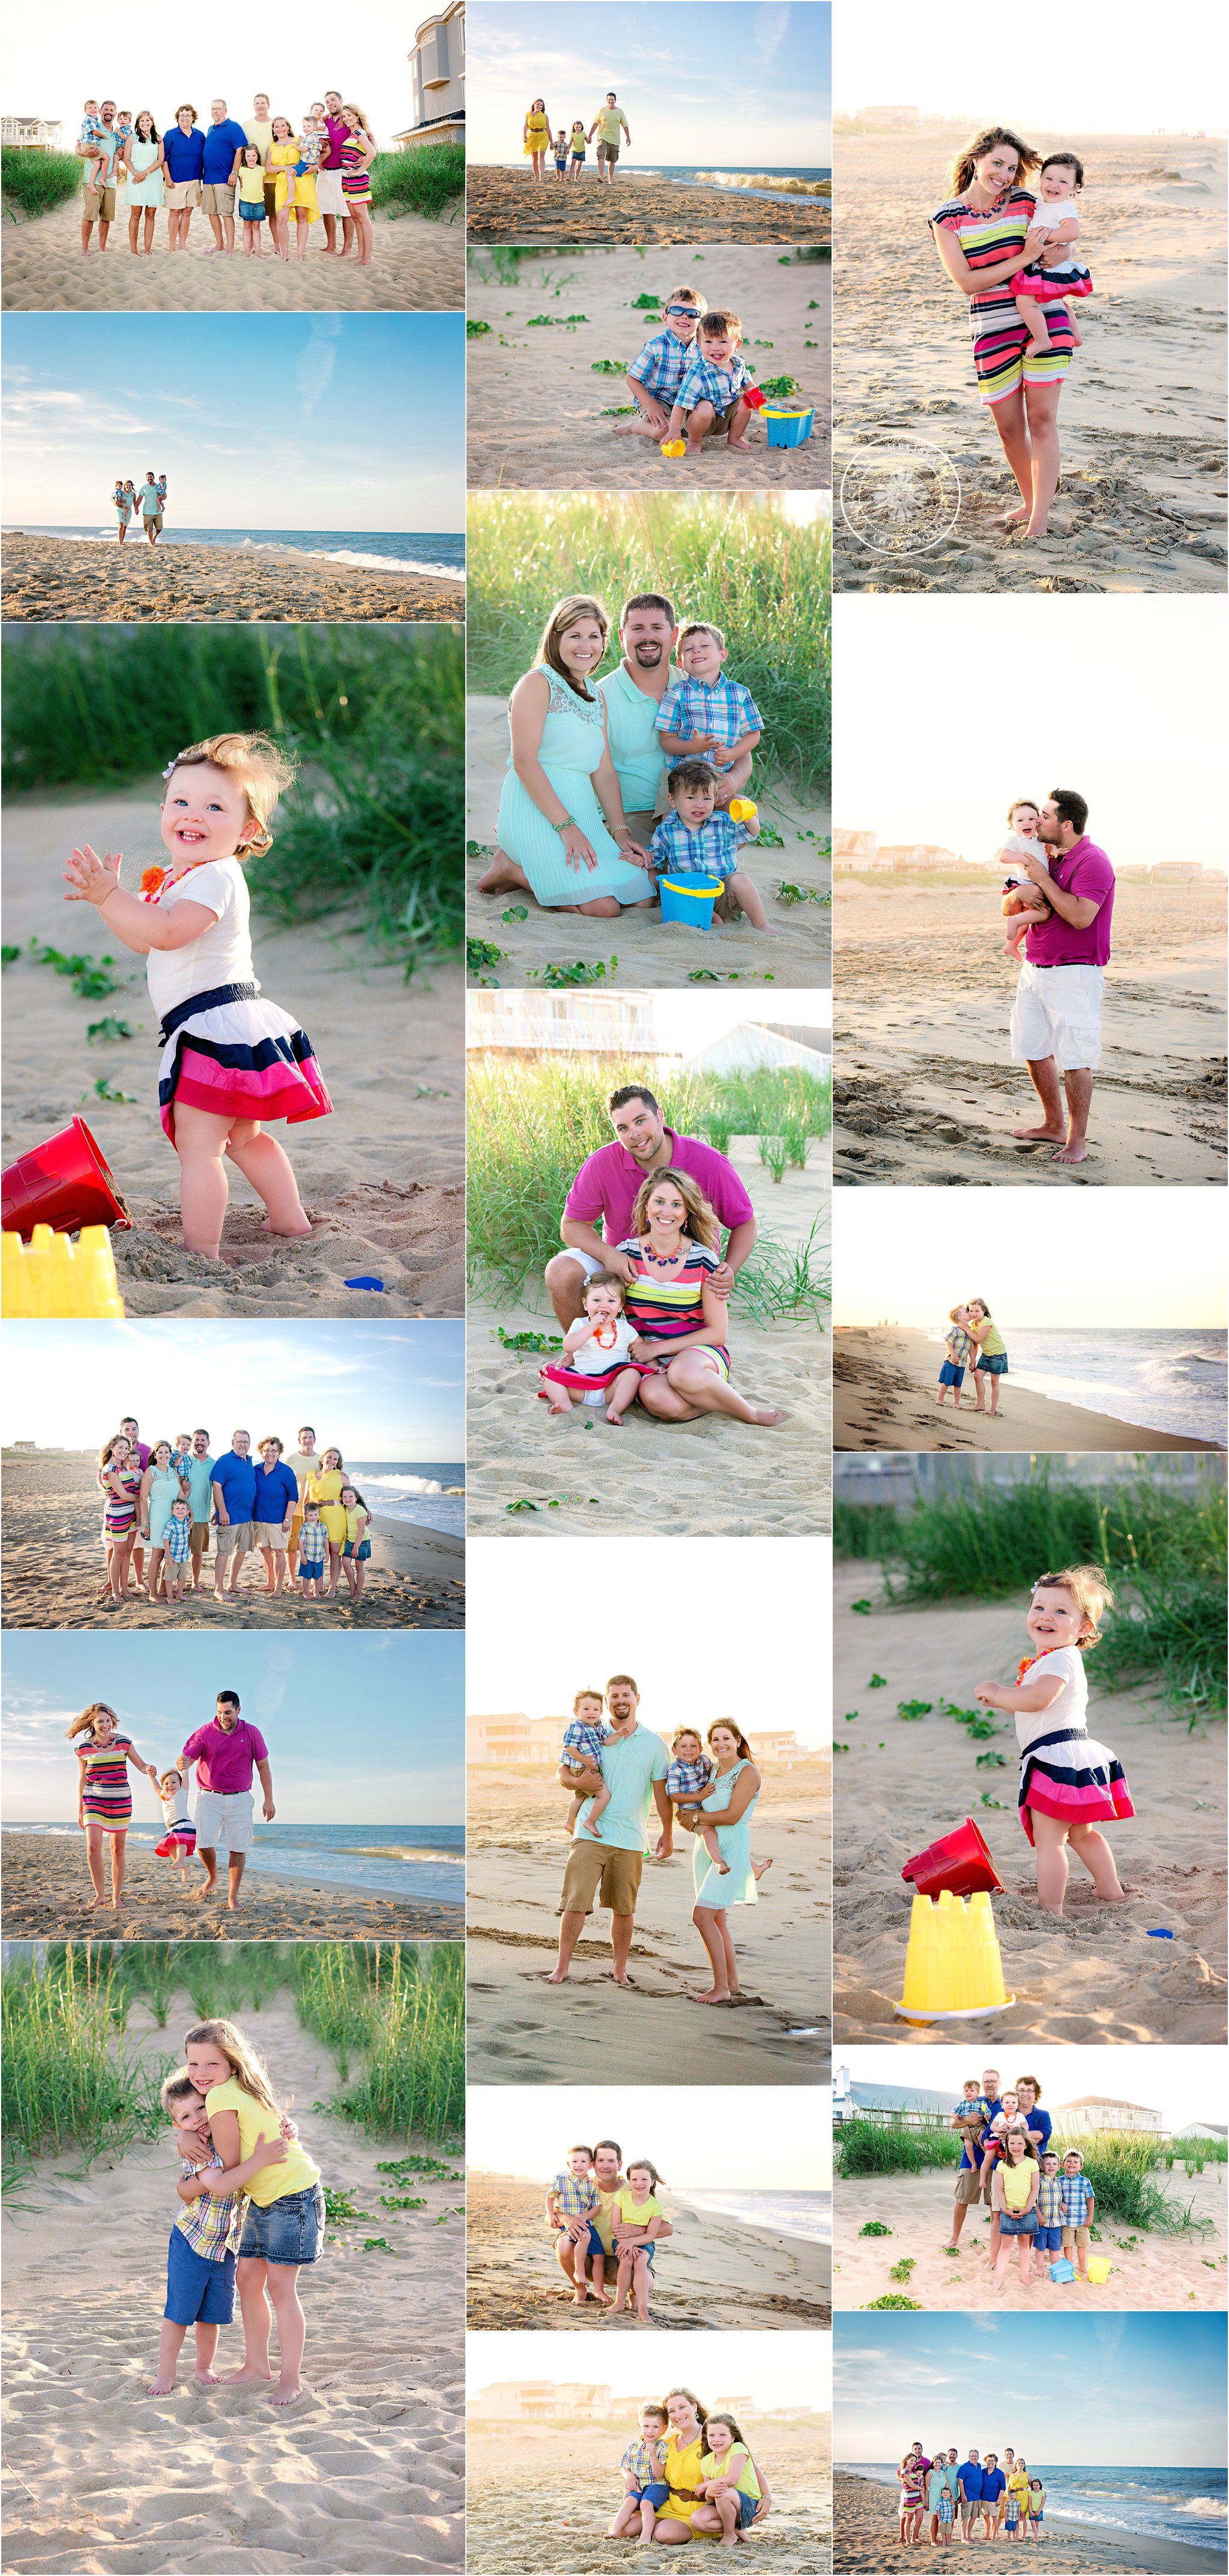 family-beach-session-family-photography-ideas-beach-session-inspiration-virginia-beach-photography-lifestyle-photography